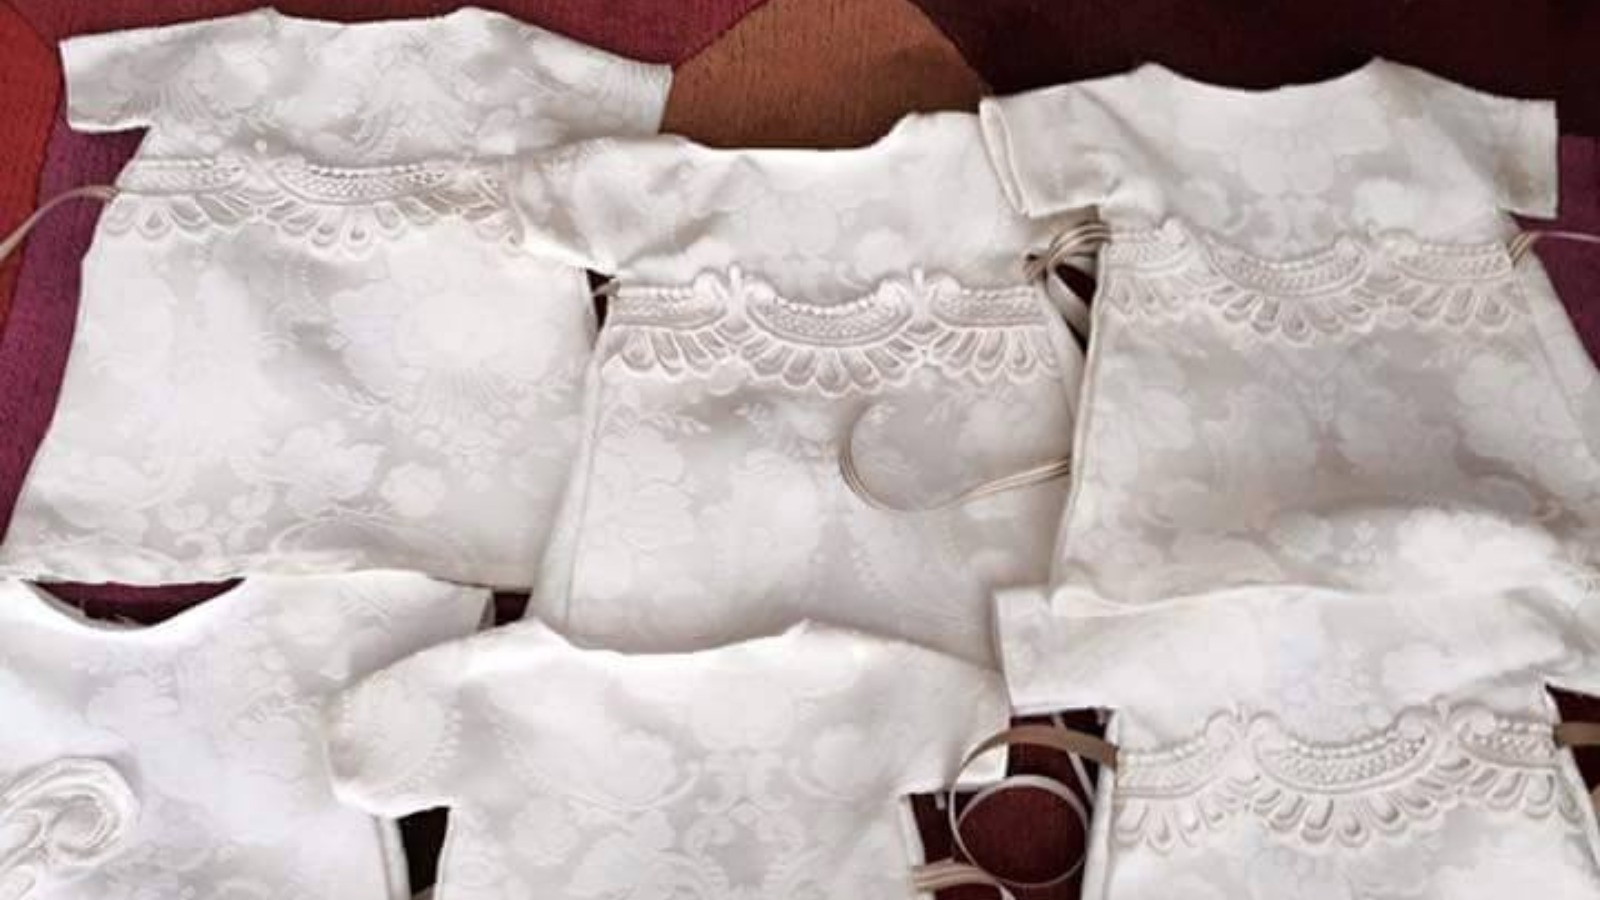 Woman \'overwhelmed\' by response after wedding dress turned into ...